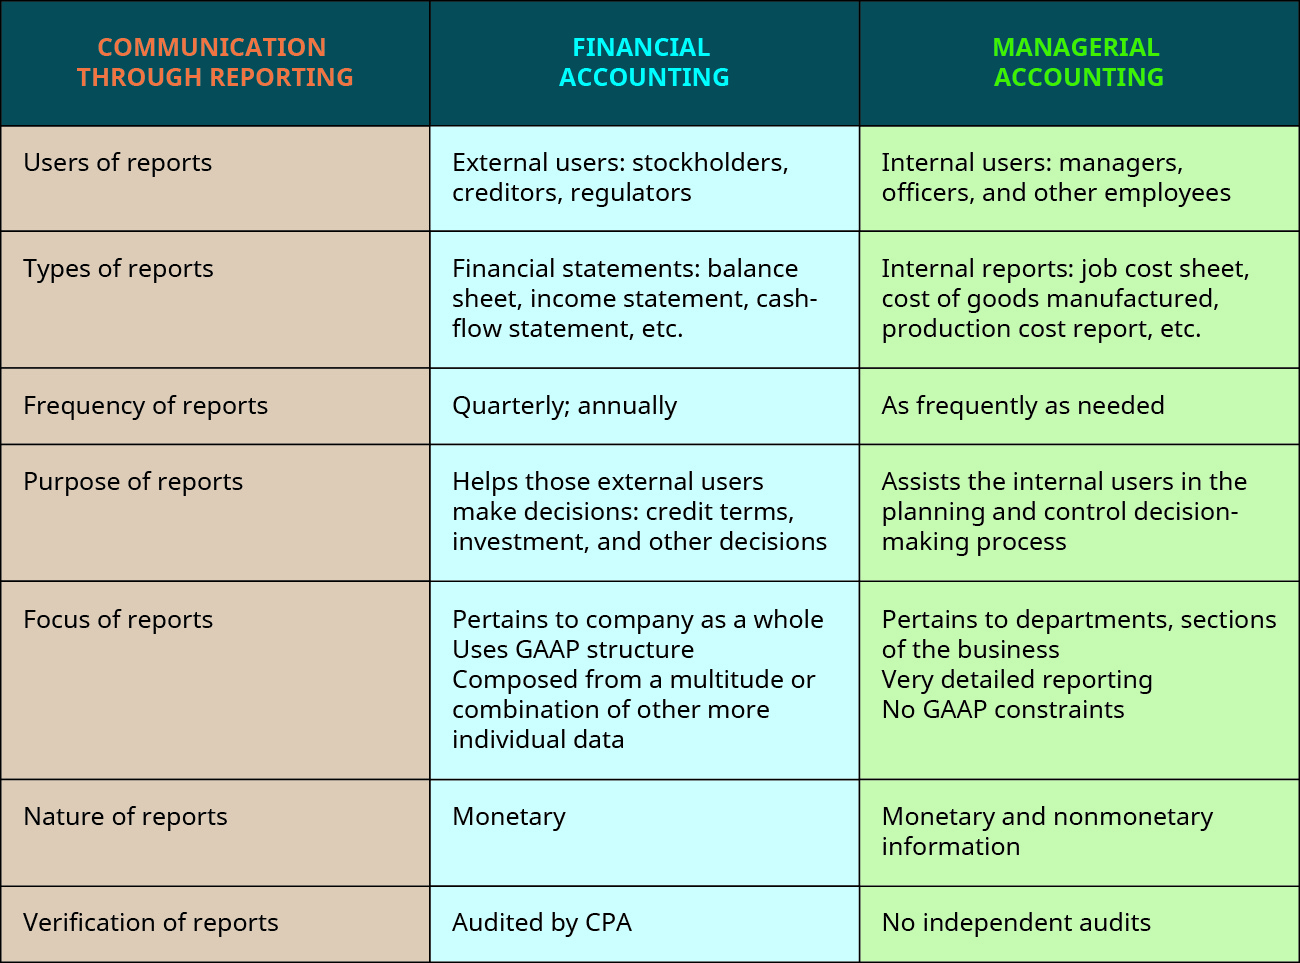 A three-column chart shows the headings Communication through Reporting, Financial Accounting, and Managerial Accounting. The rows are as follows: users of reports; external users: stockholders, creditors, regulators; internal users: managers, officers, and other employees. Types of reports; financial statements: balance sheet, income statement, cash-flow statement, etc.; internal reports: job cost sheet, cost of goods manufactured, production cost report, etc. Frequency of reports; quarterly, annually; as frequently as needed. Purpose of reports; helps those external users make decisions: credit terms, investment, and other decisions; assists the internal users in the planning and control decision-making process. Focus of reports; pertains to company as a whole, uses GAAP structure, composed from a multitude or combination of other more individual data; pertains to departments, sections of the business, very detailed reporting, no GAAP constraints. Nature of reports; monetary; monetary and nonmonetary information. Verification of reports; audited by CPA; no independent audits.